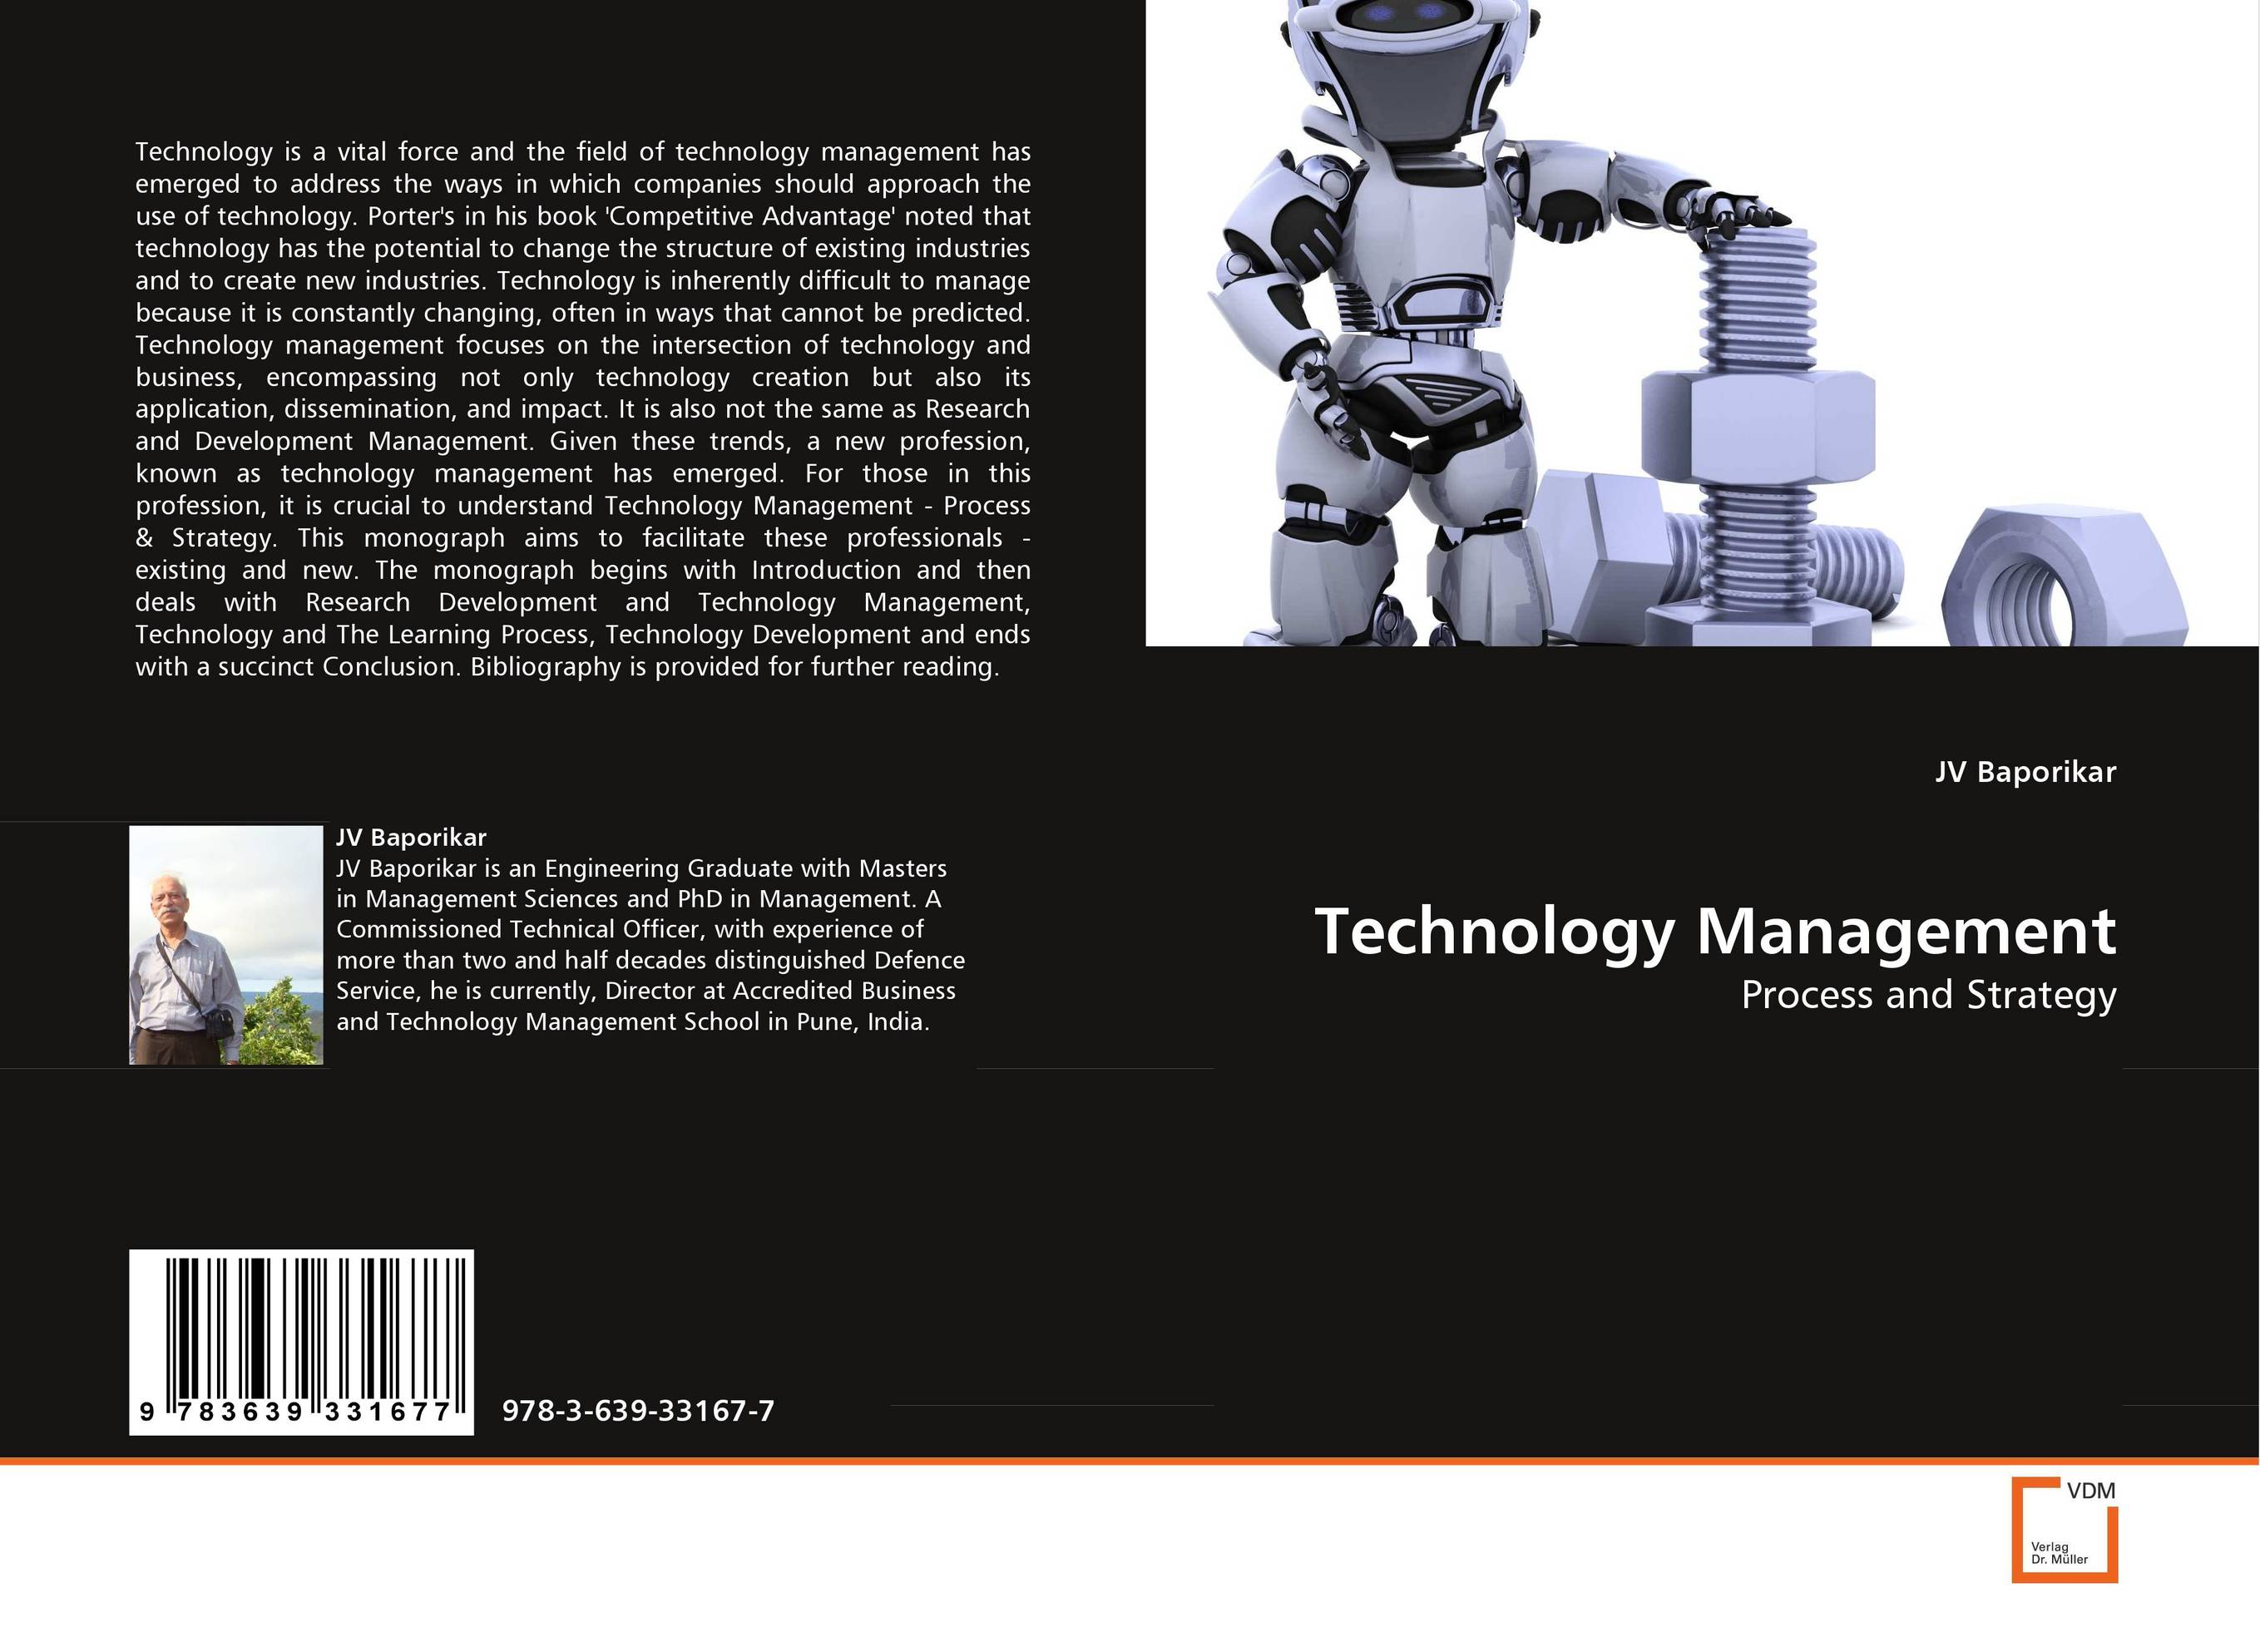 Technology Management norman god that limps – science and technology i n the eighties